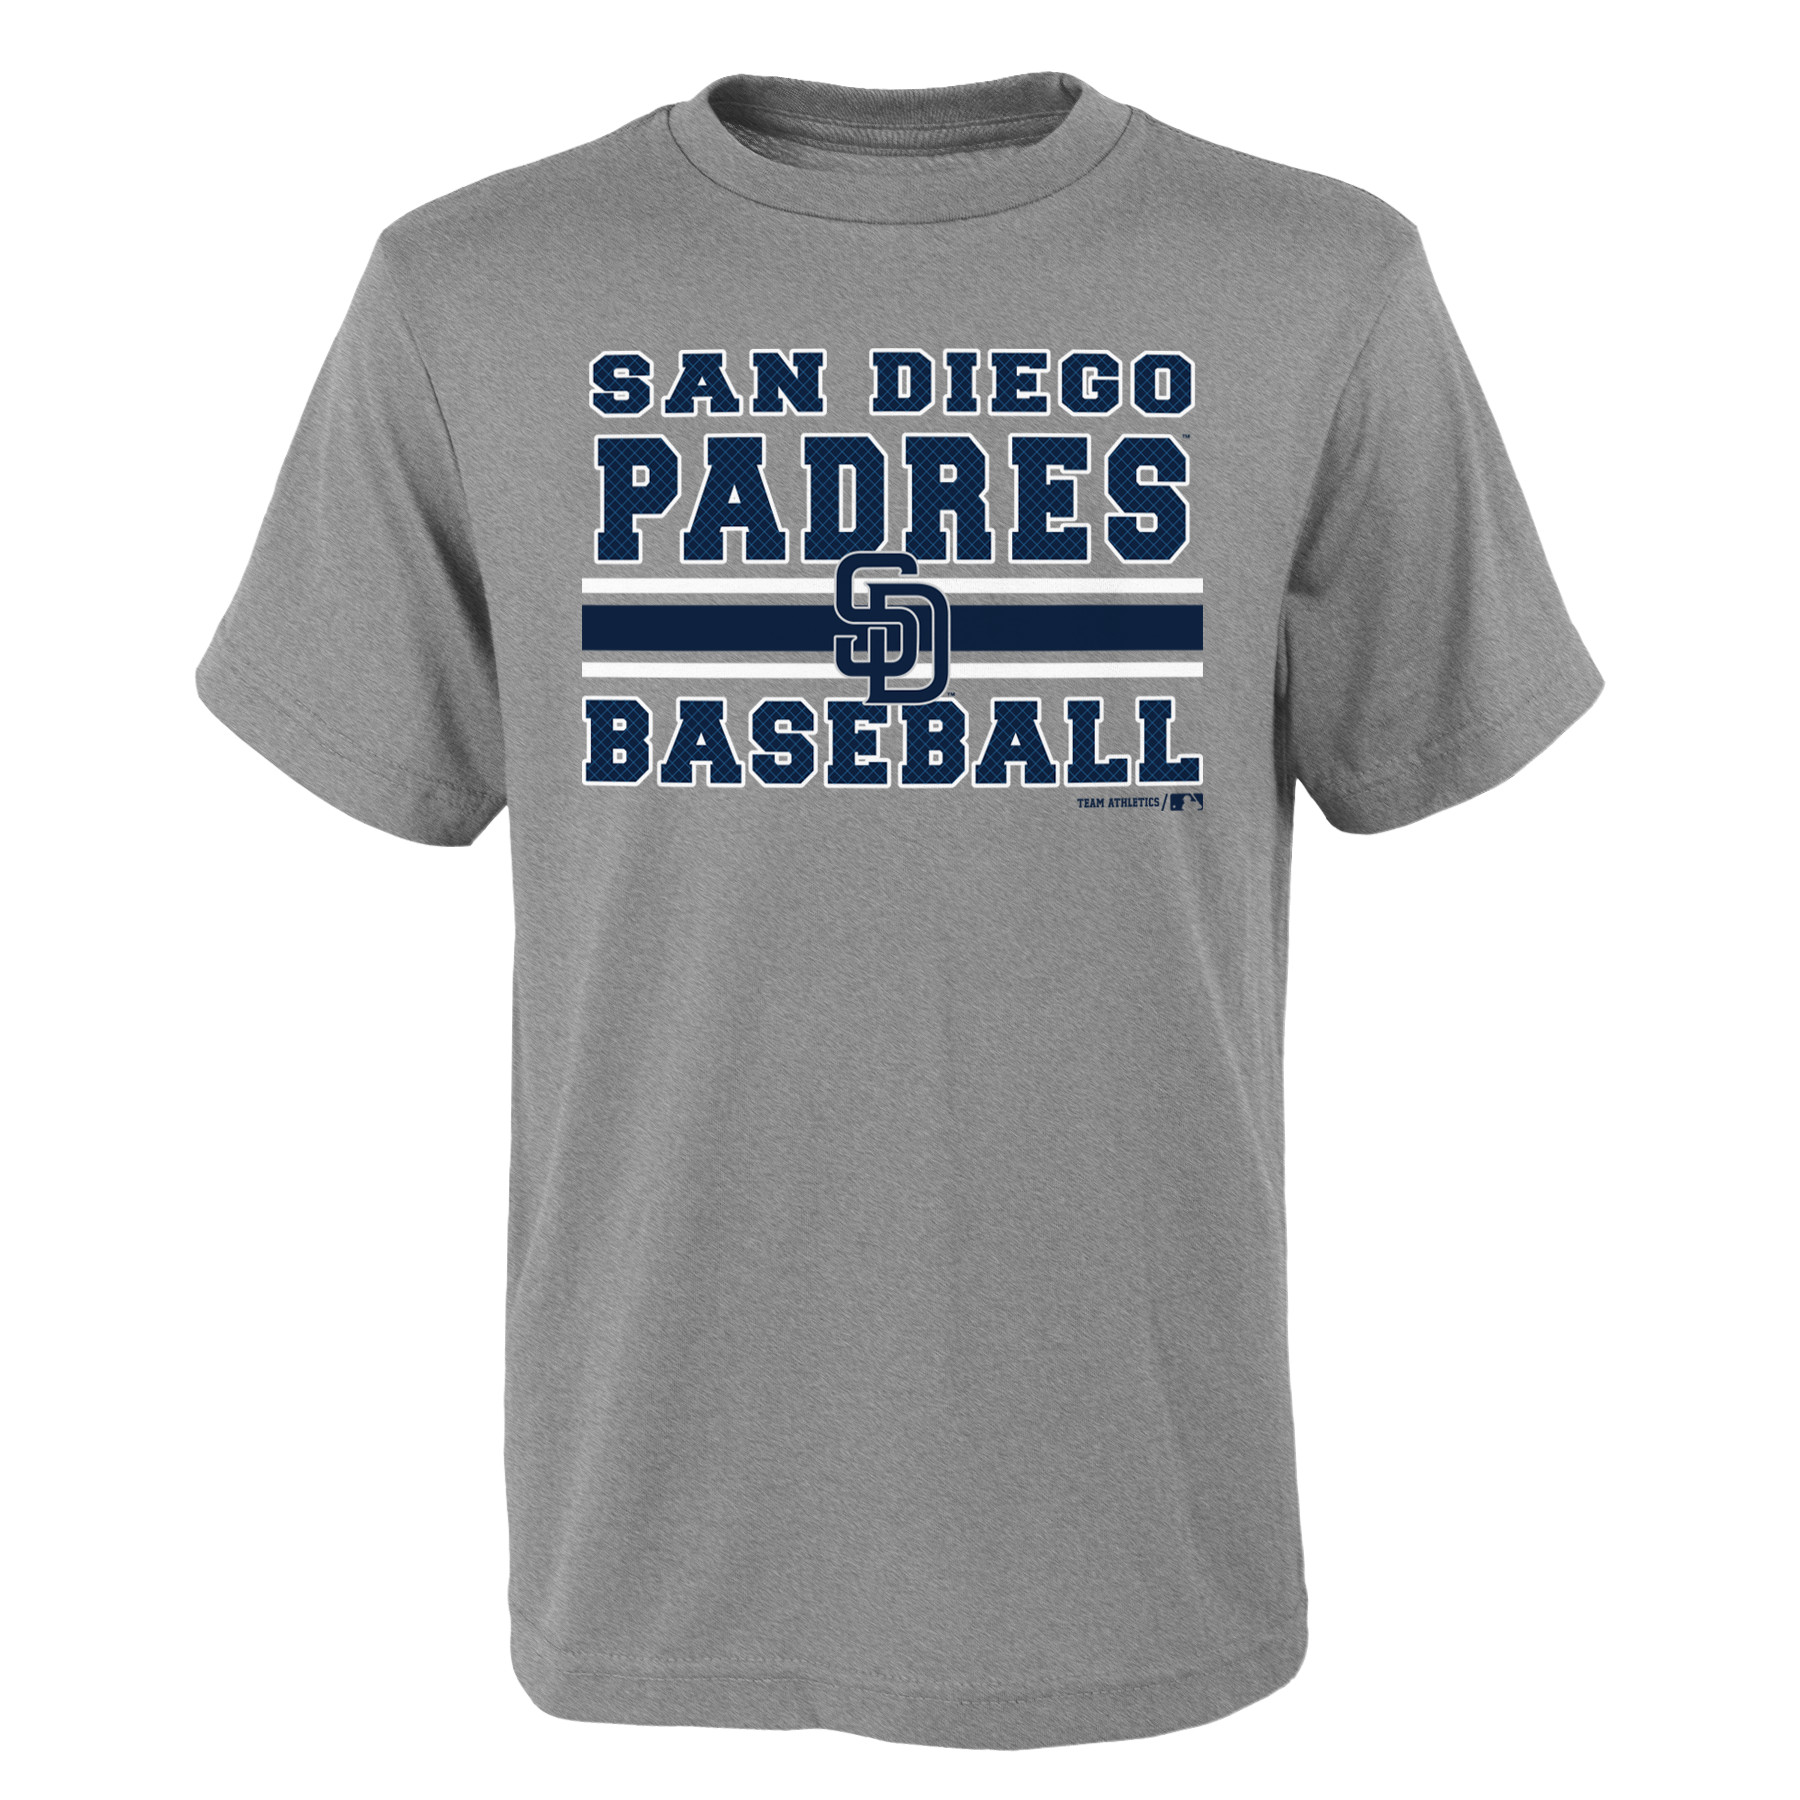 MLB San Diego PADRES TEE Short Sleeve Boys OPP 90% Cotton 10% Polyester Gray Team Tee 4-18